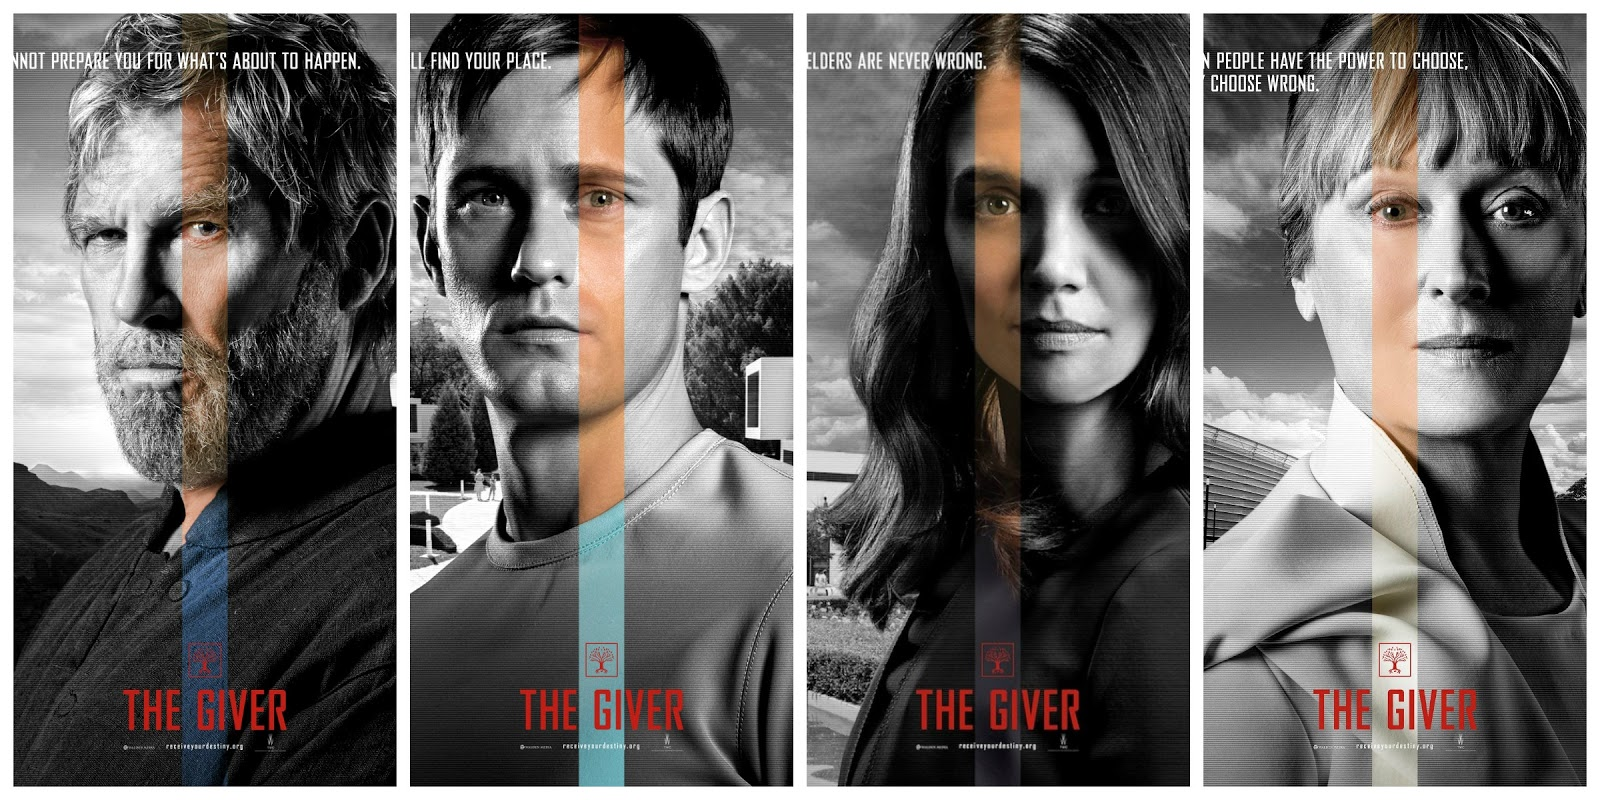 The Giver Jonas's parents the Chief Elder